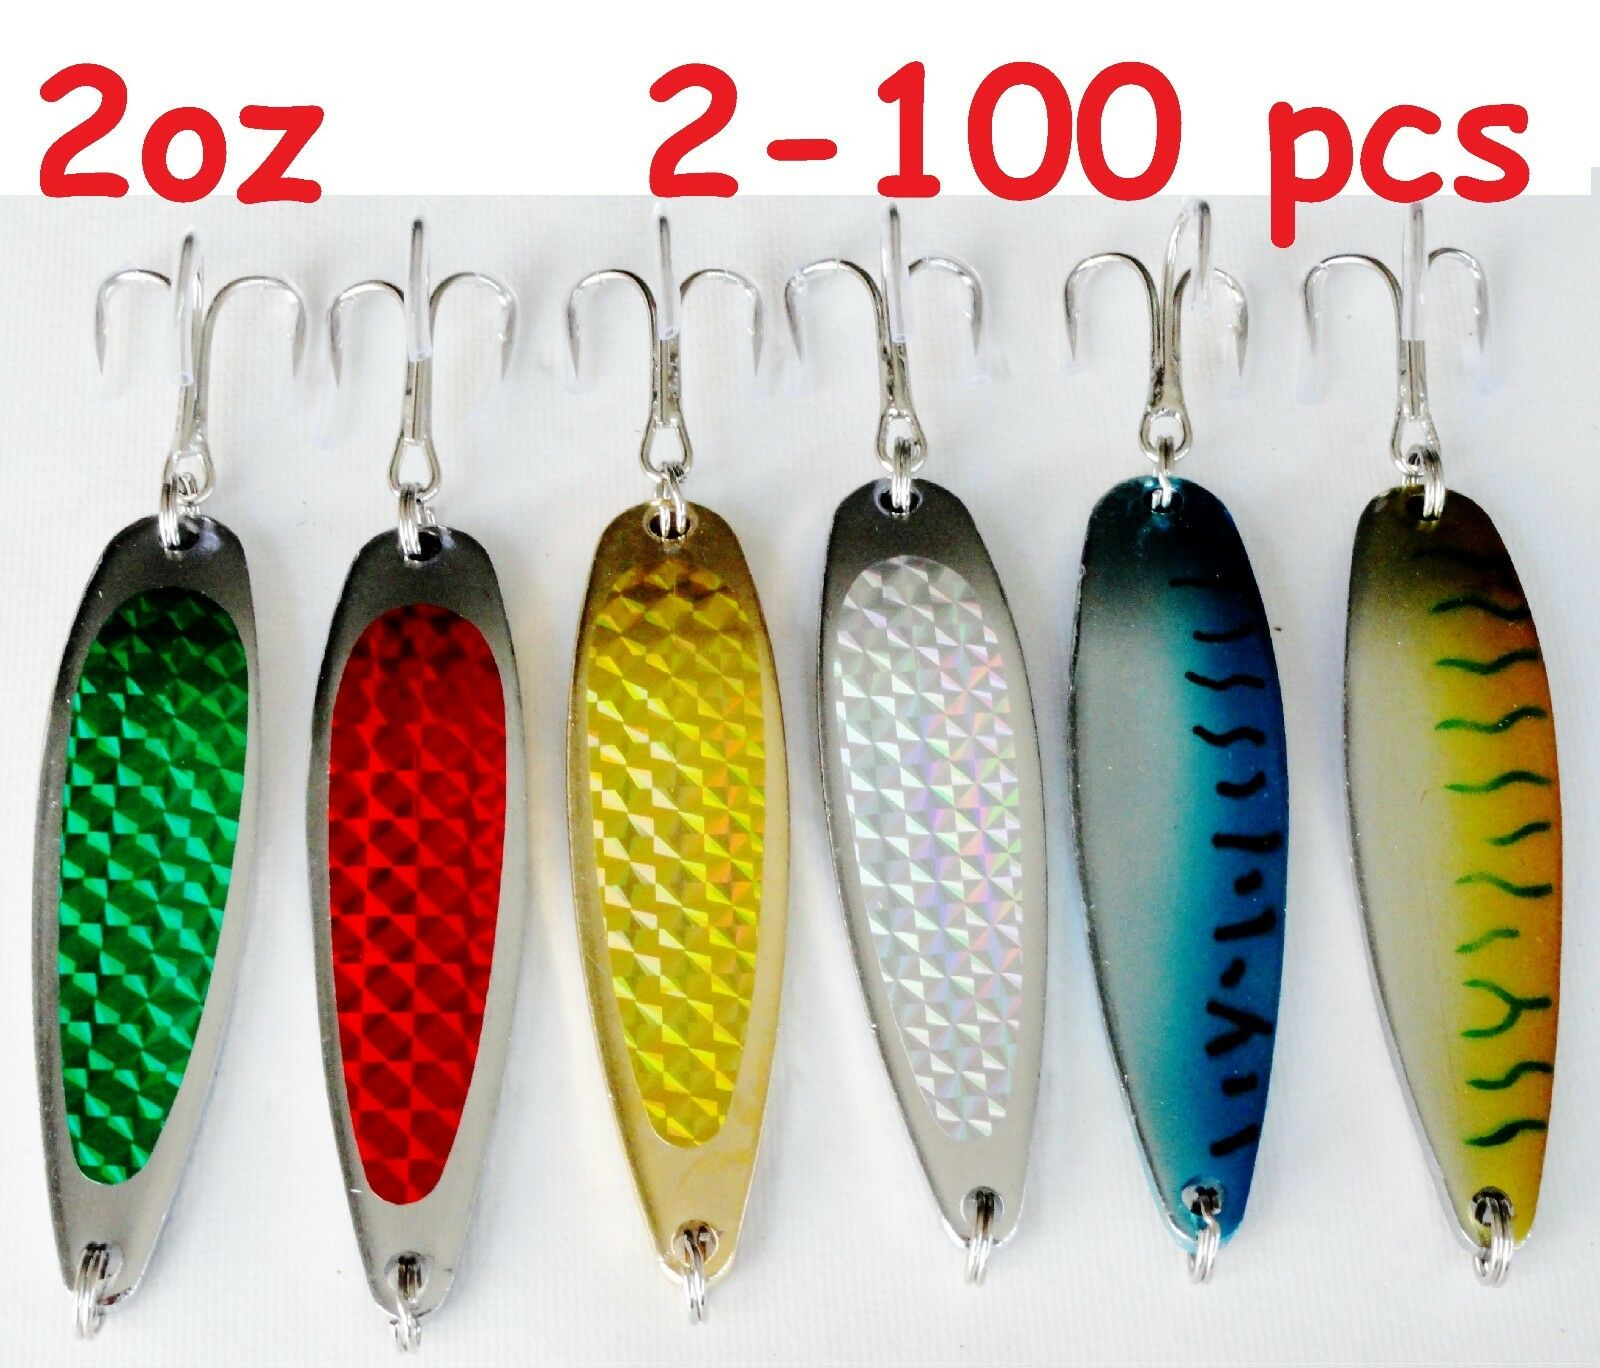 2oz Crocodile Casting Spoons Fishing Lures-Choose color and Qty (2 to 100)